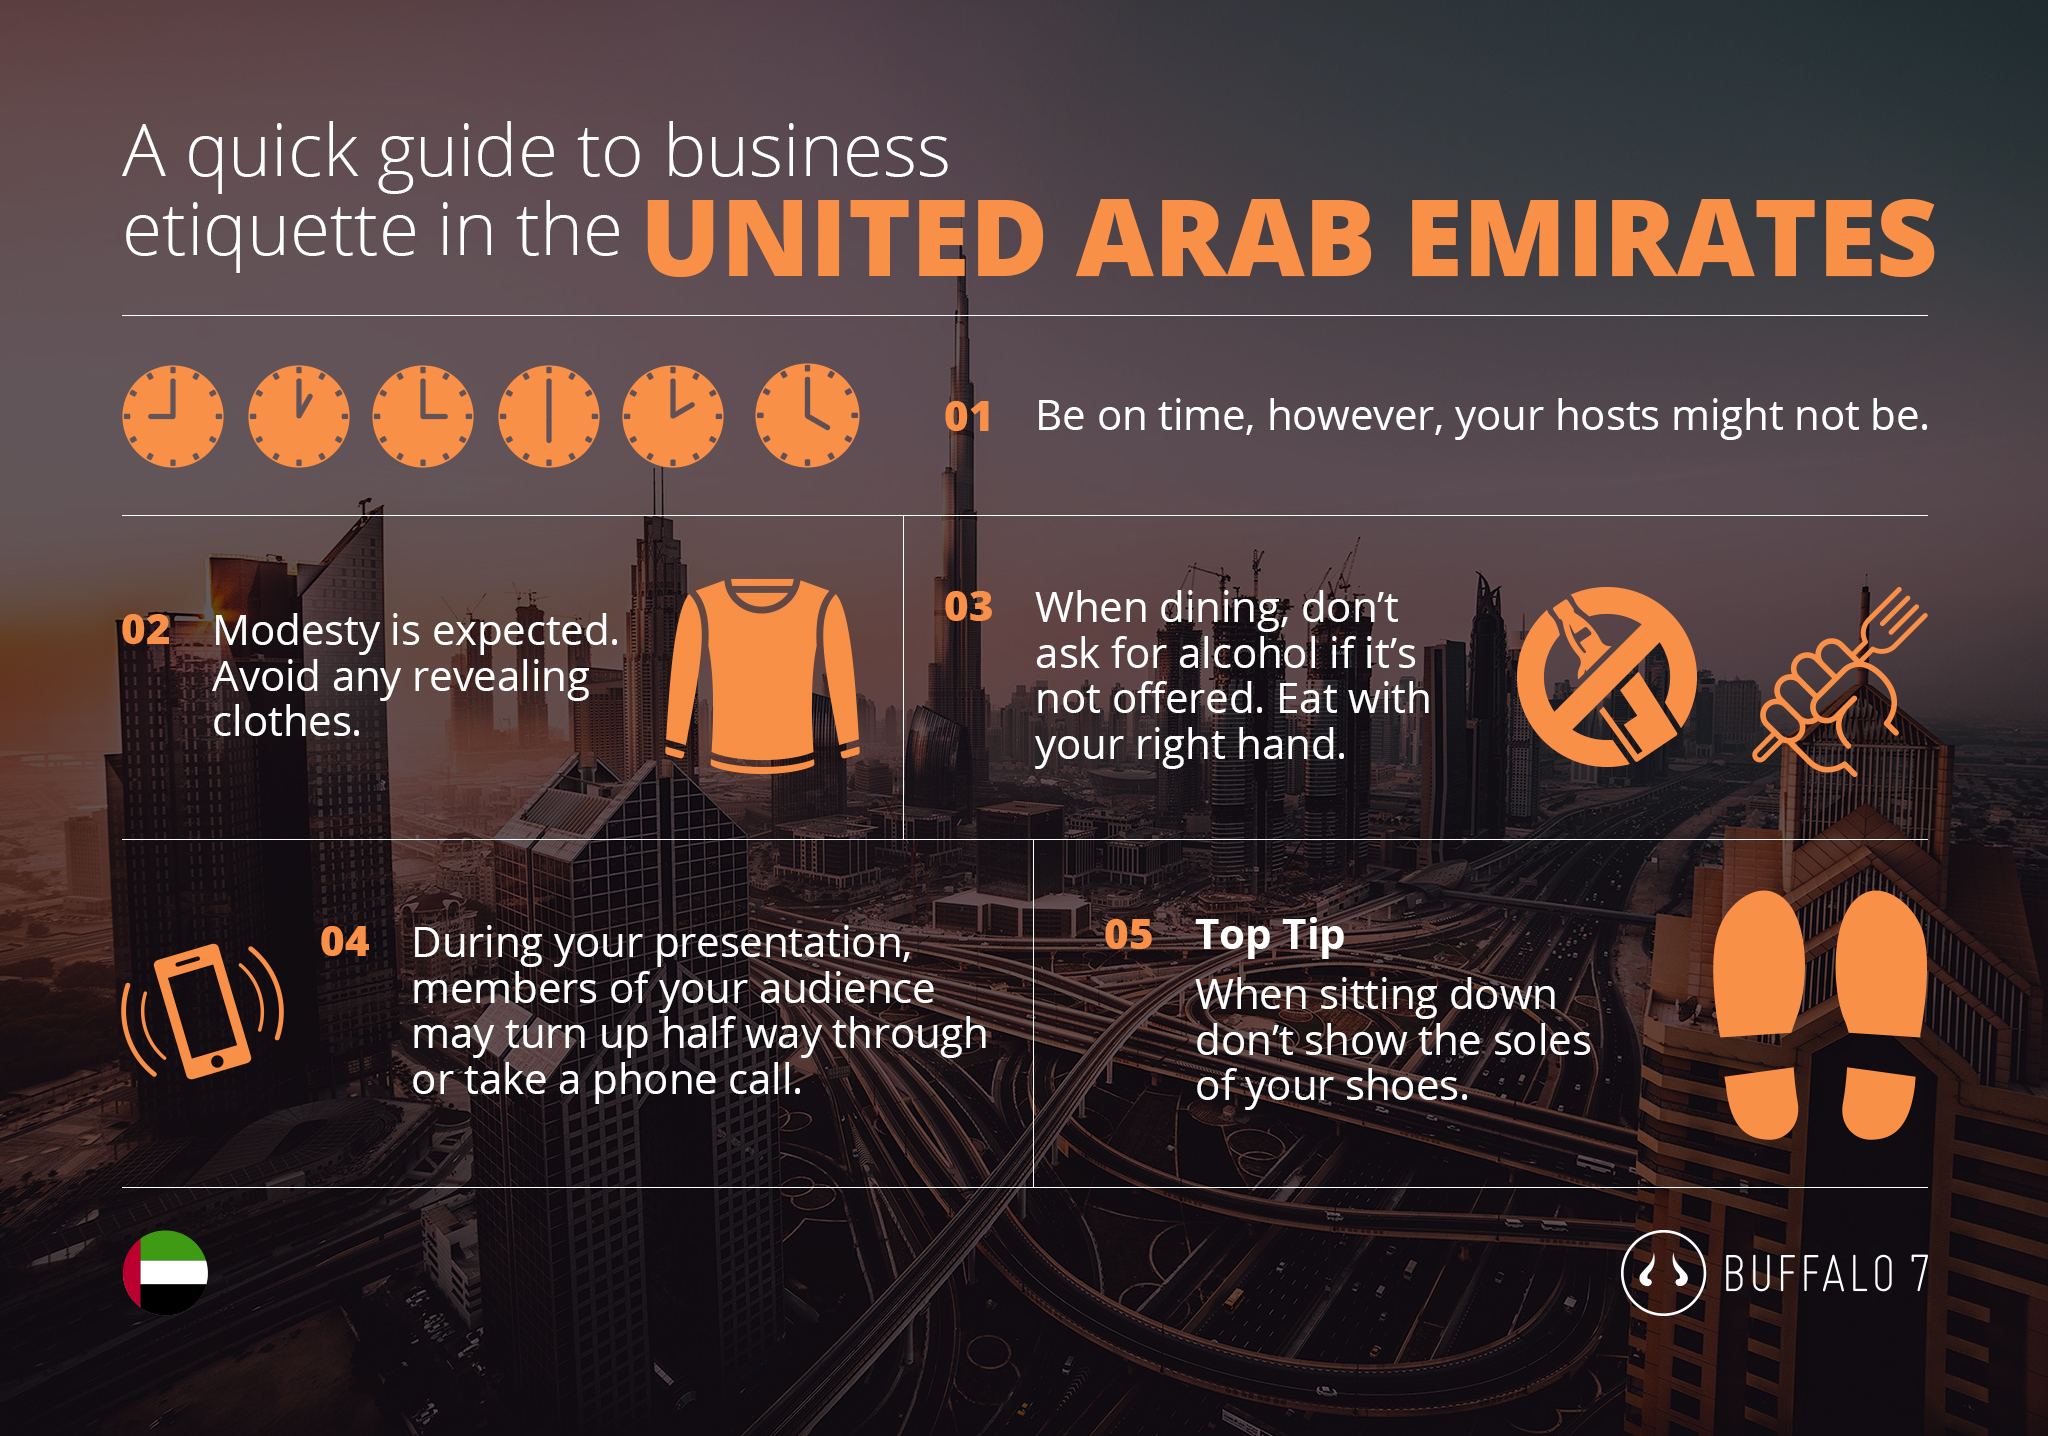 etiquette tips for business in the UAE